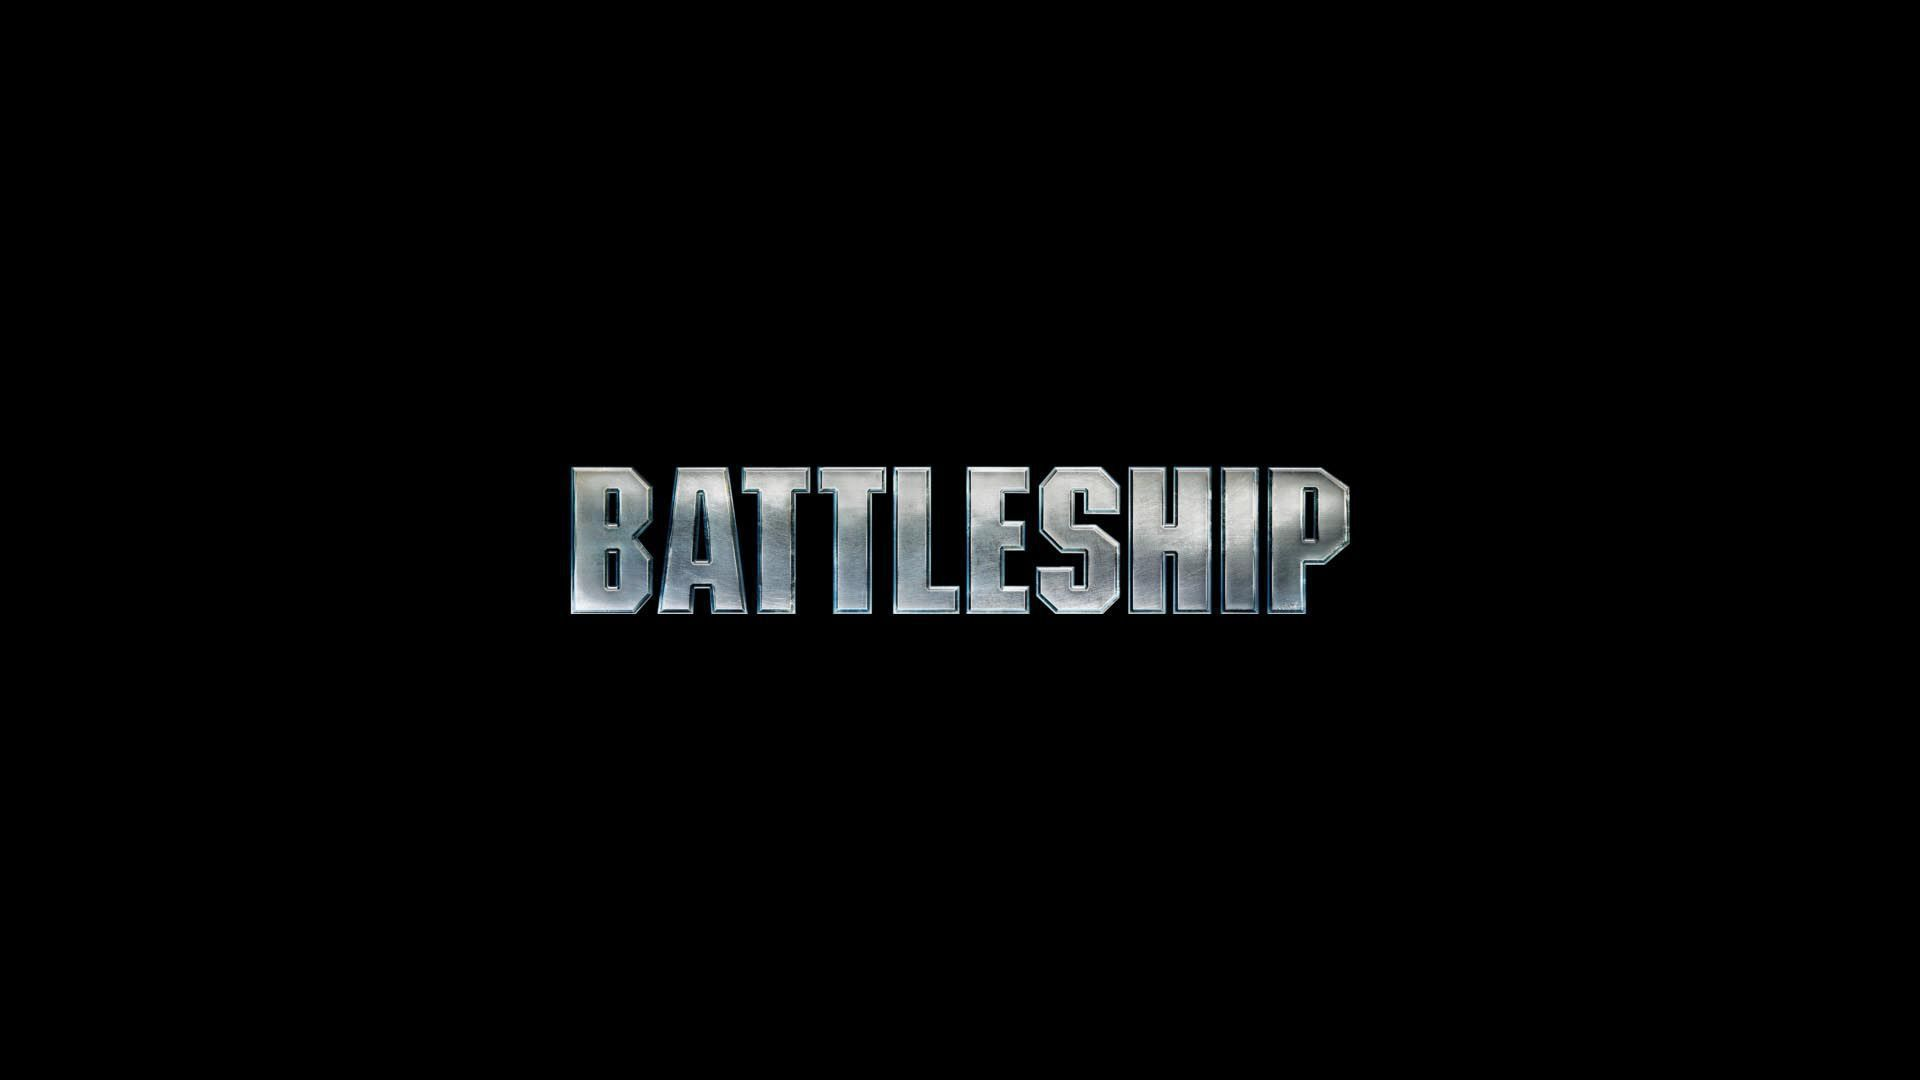 Picture Battleship